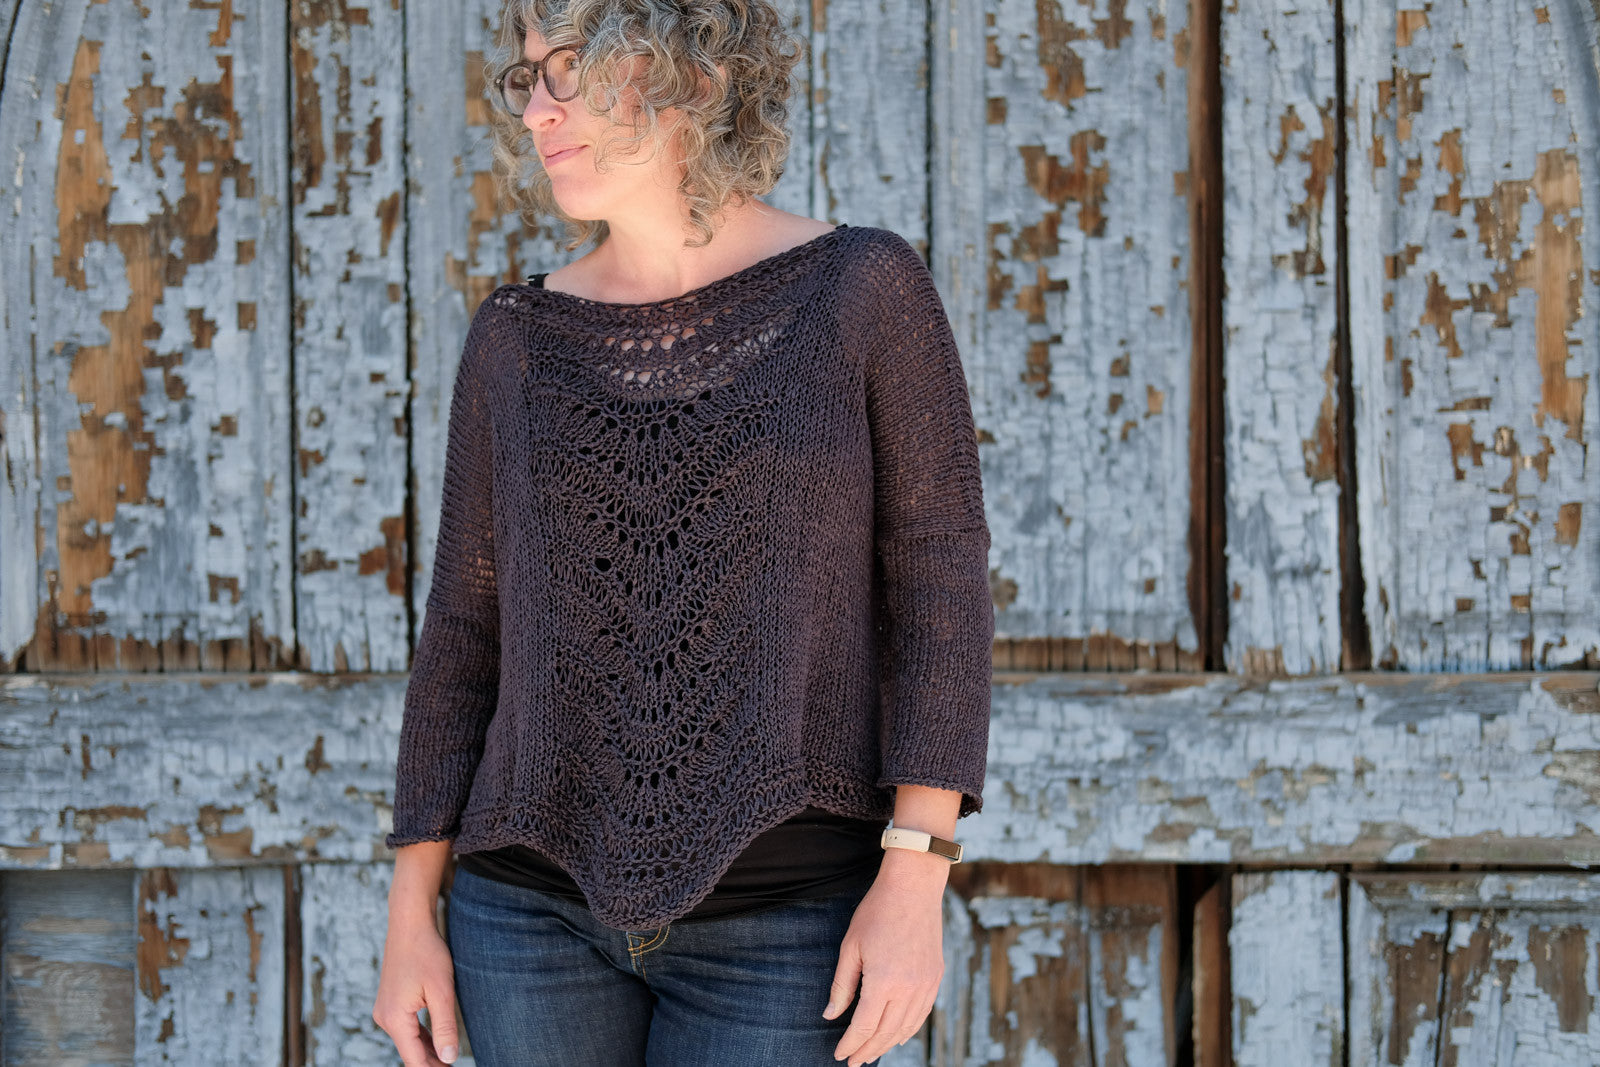 Jaime Jennings in her Deschain Sweater